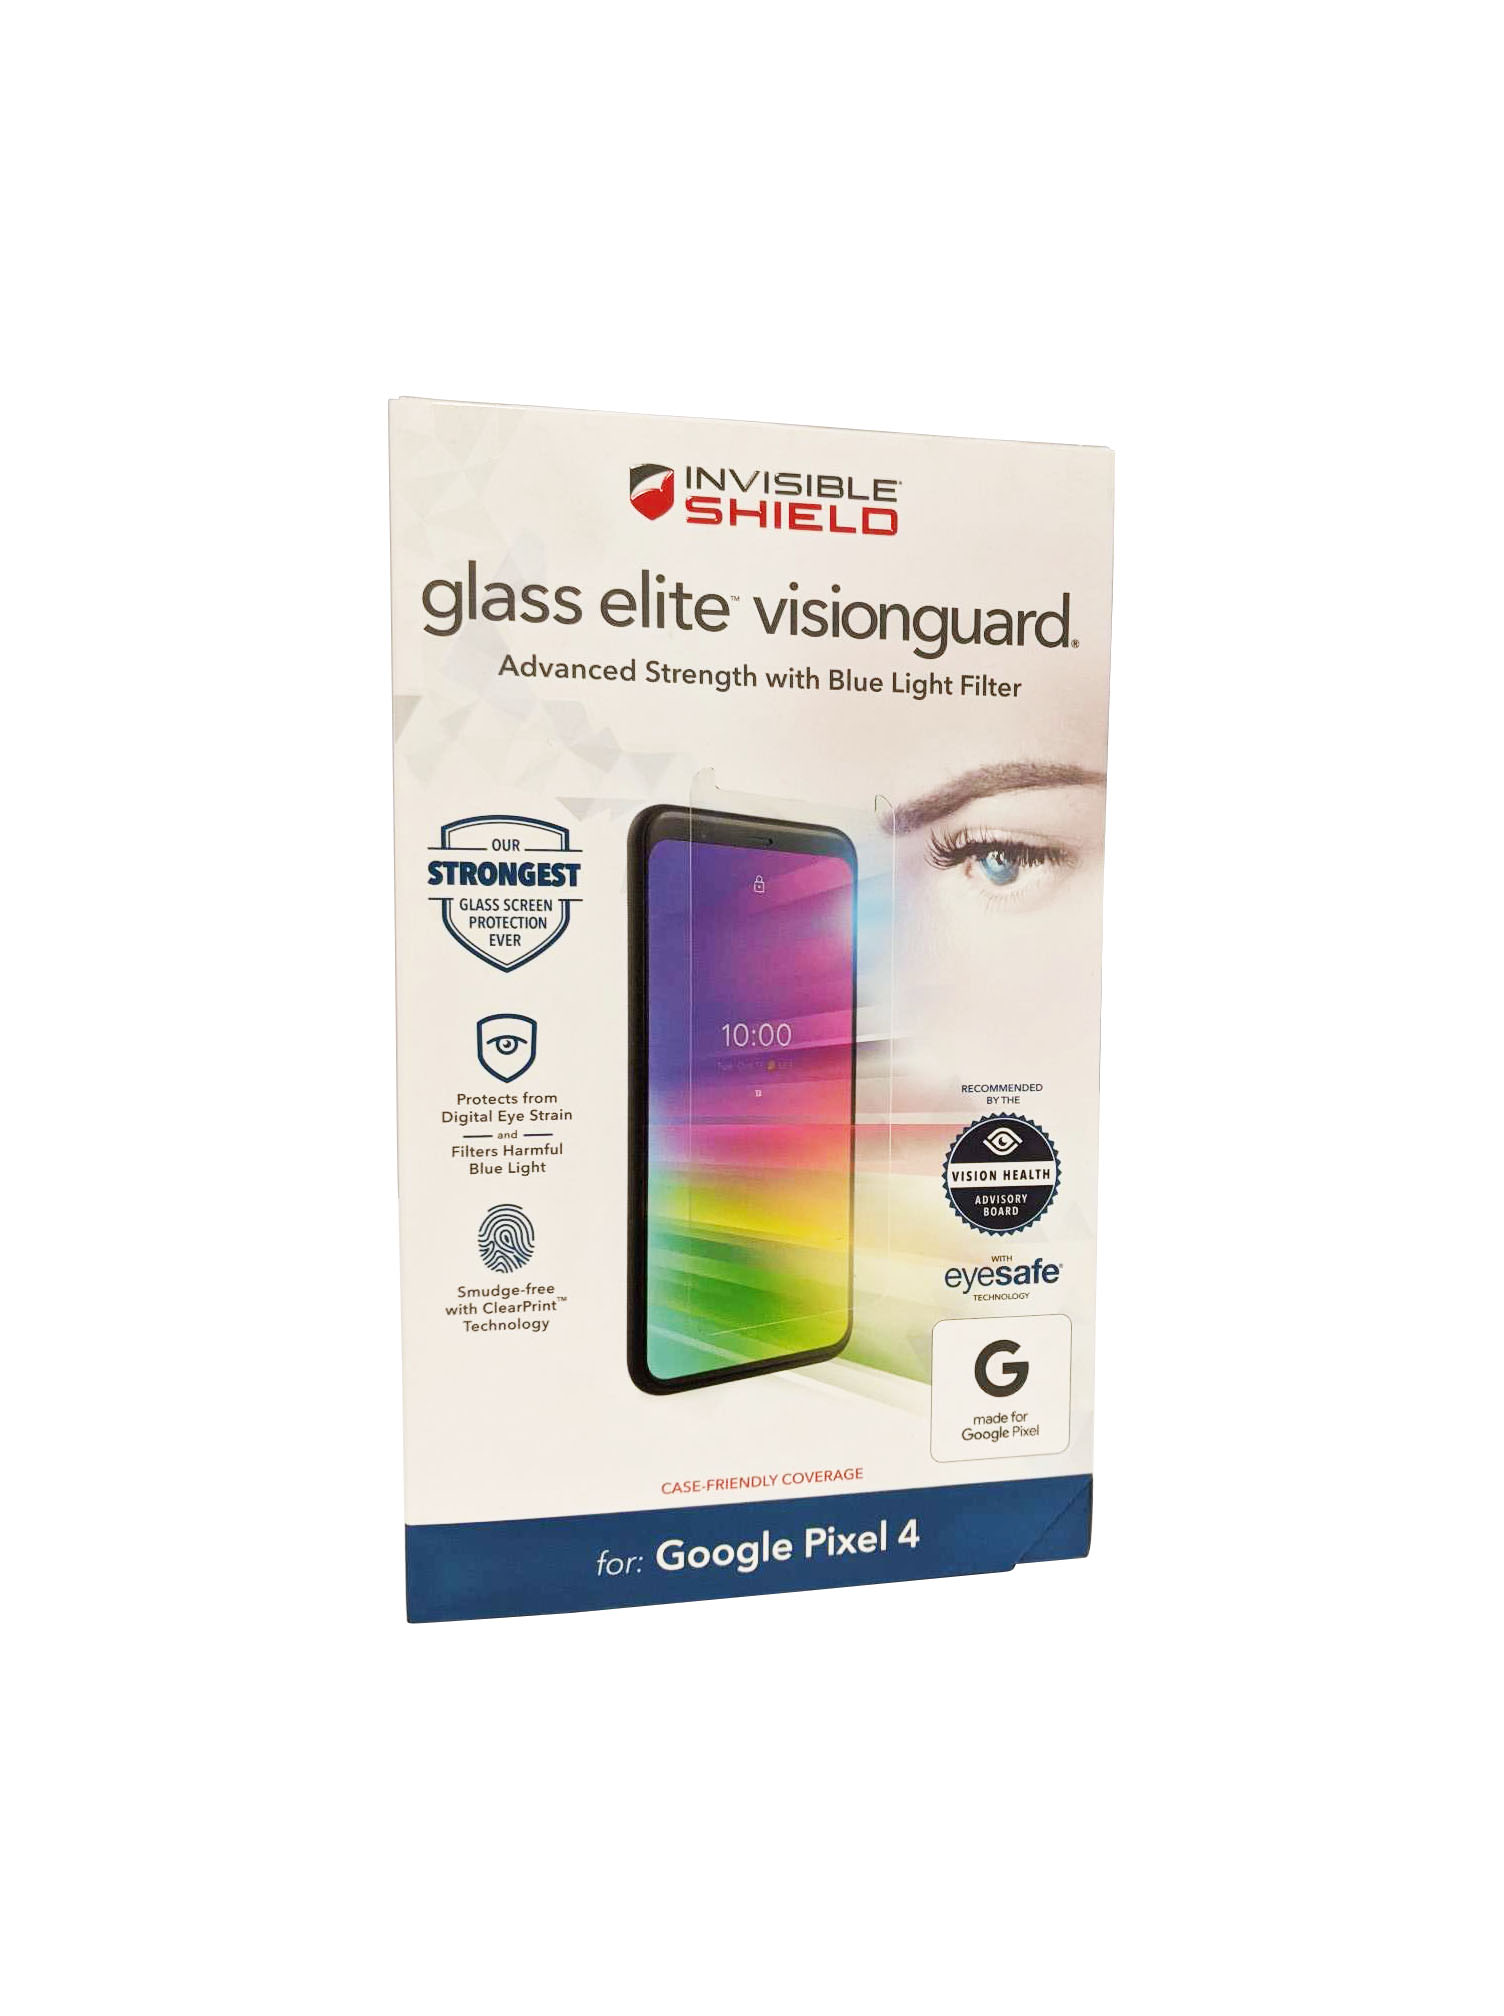 ZAGG InvisibleShield Screen Protector for Pixel 4 Glass Elite VisionGuard - Clear